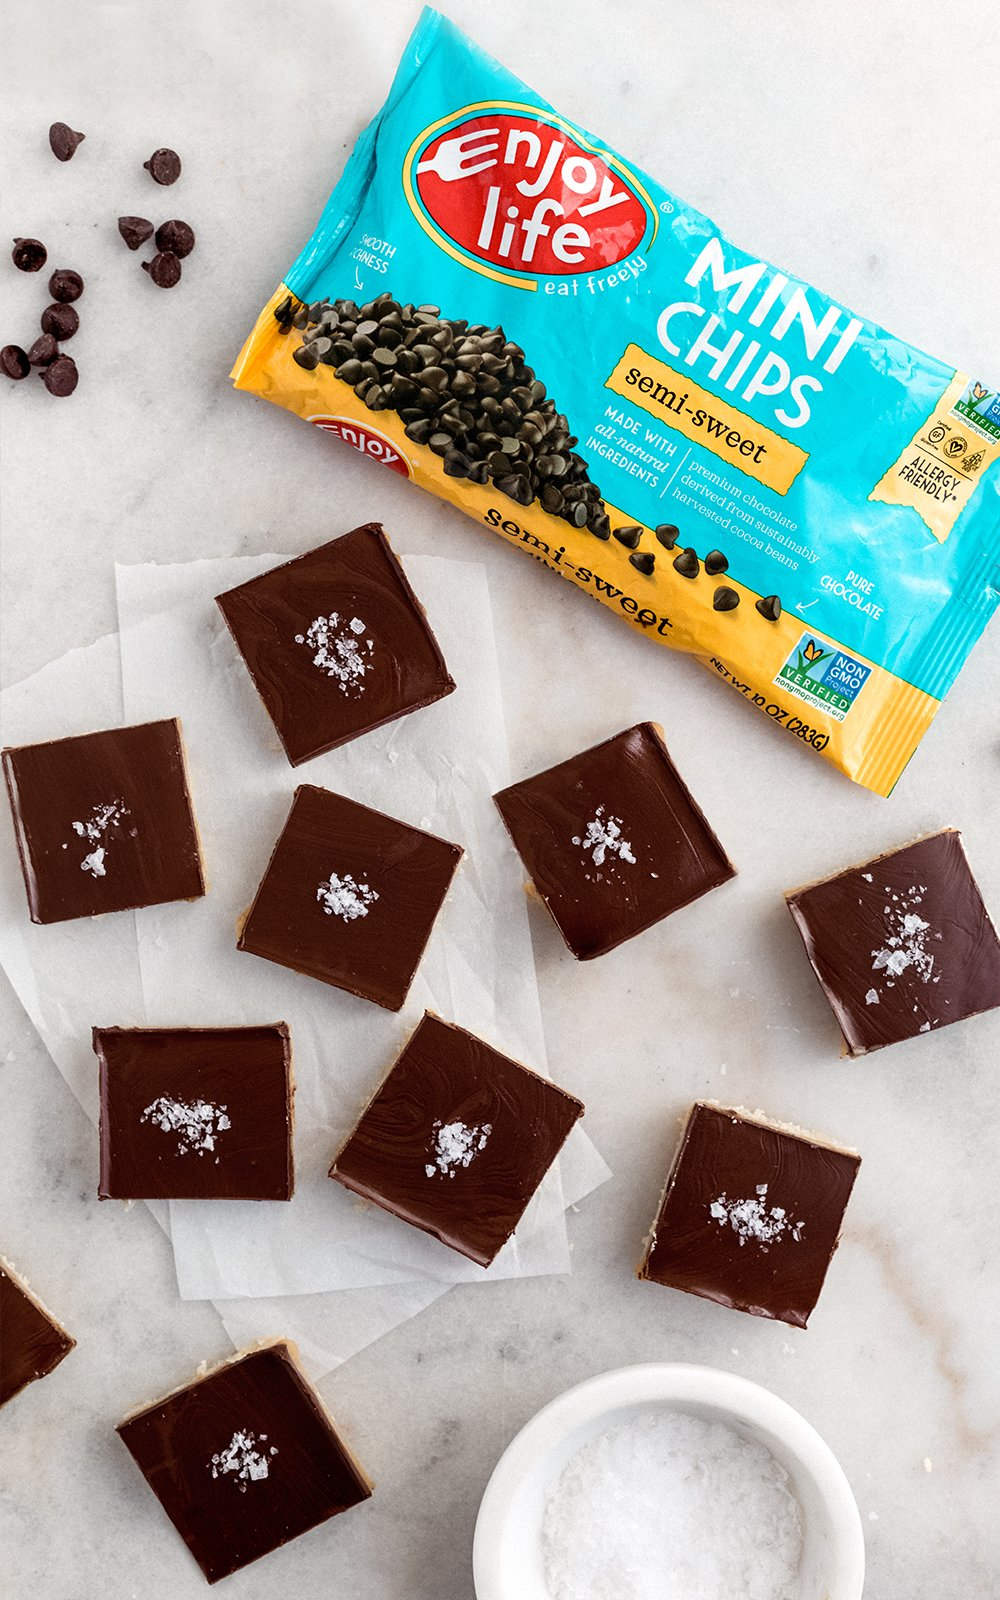 Easy to make millionaire bars with a shortbread cookie base, salted tahini caramel filling and topped with dairy free chocolate. Both vegan, gluten free and paleo! This recipe is in partnership with Enjoy Life.